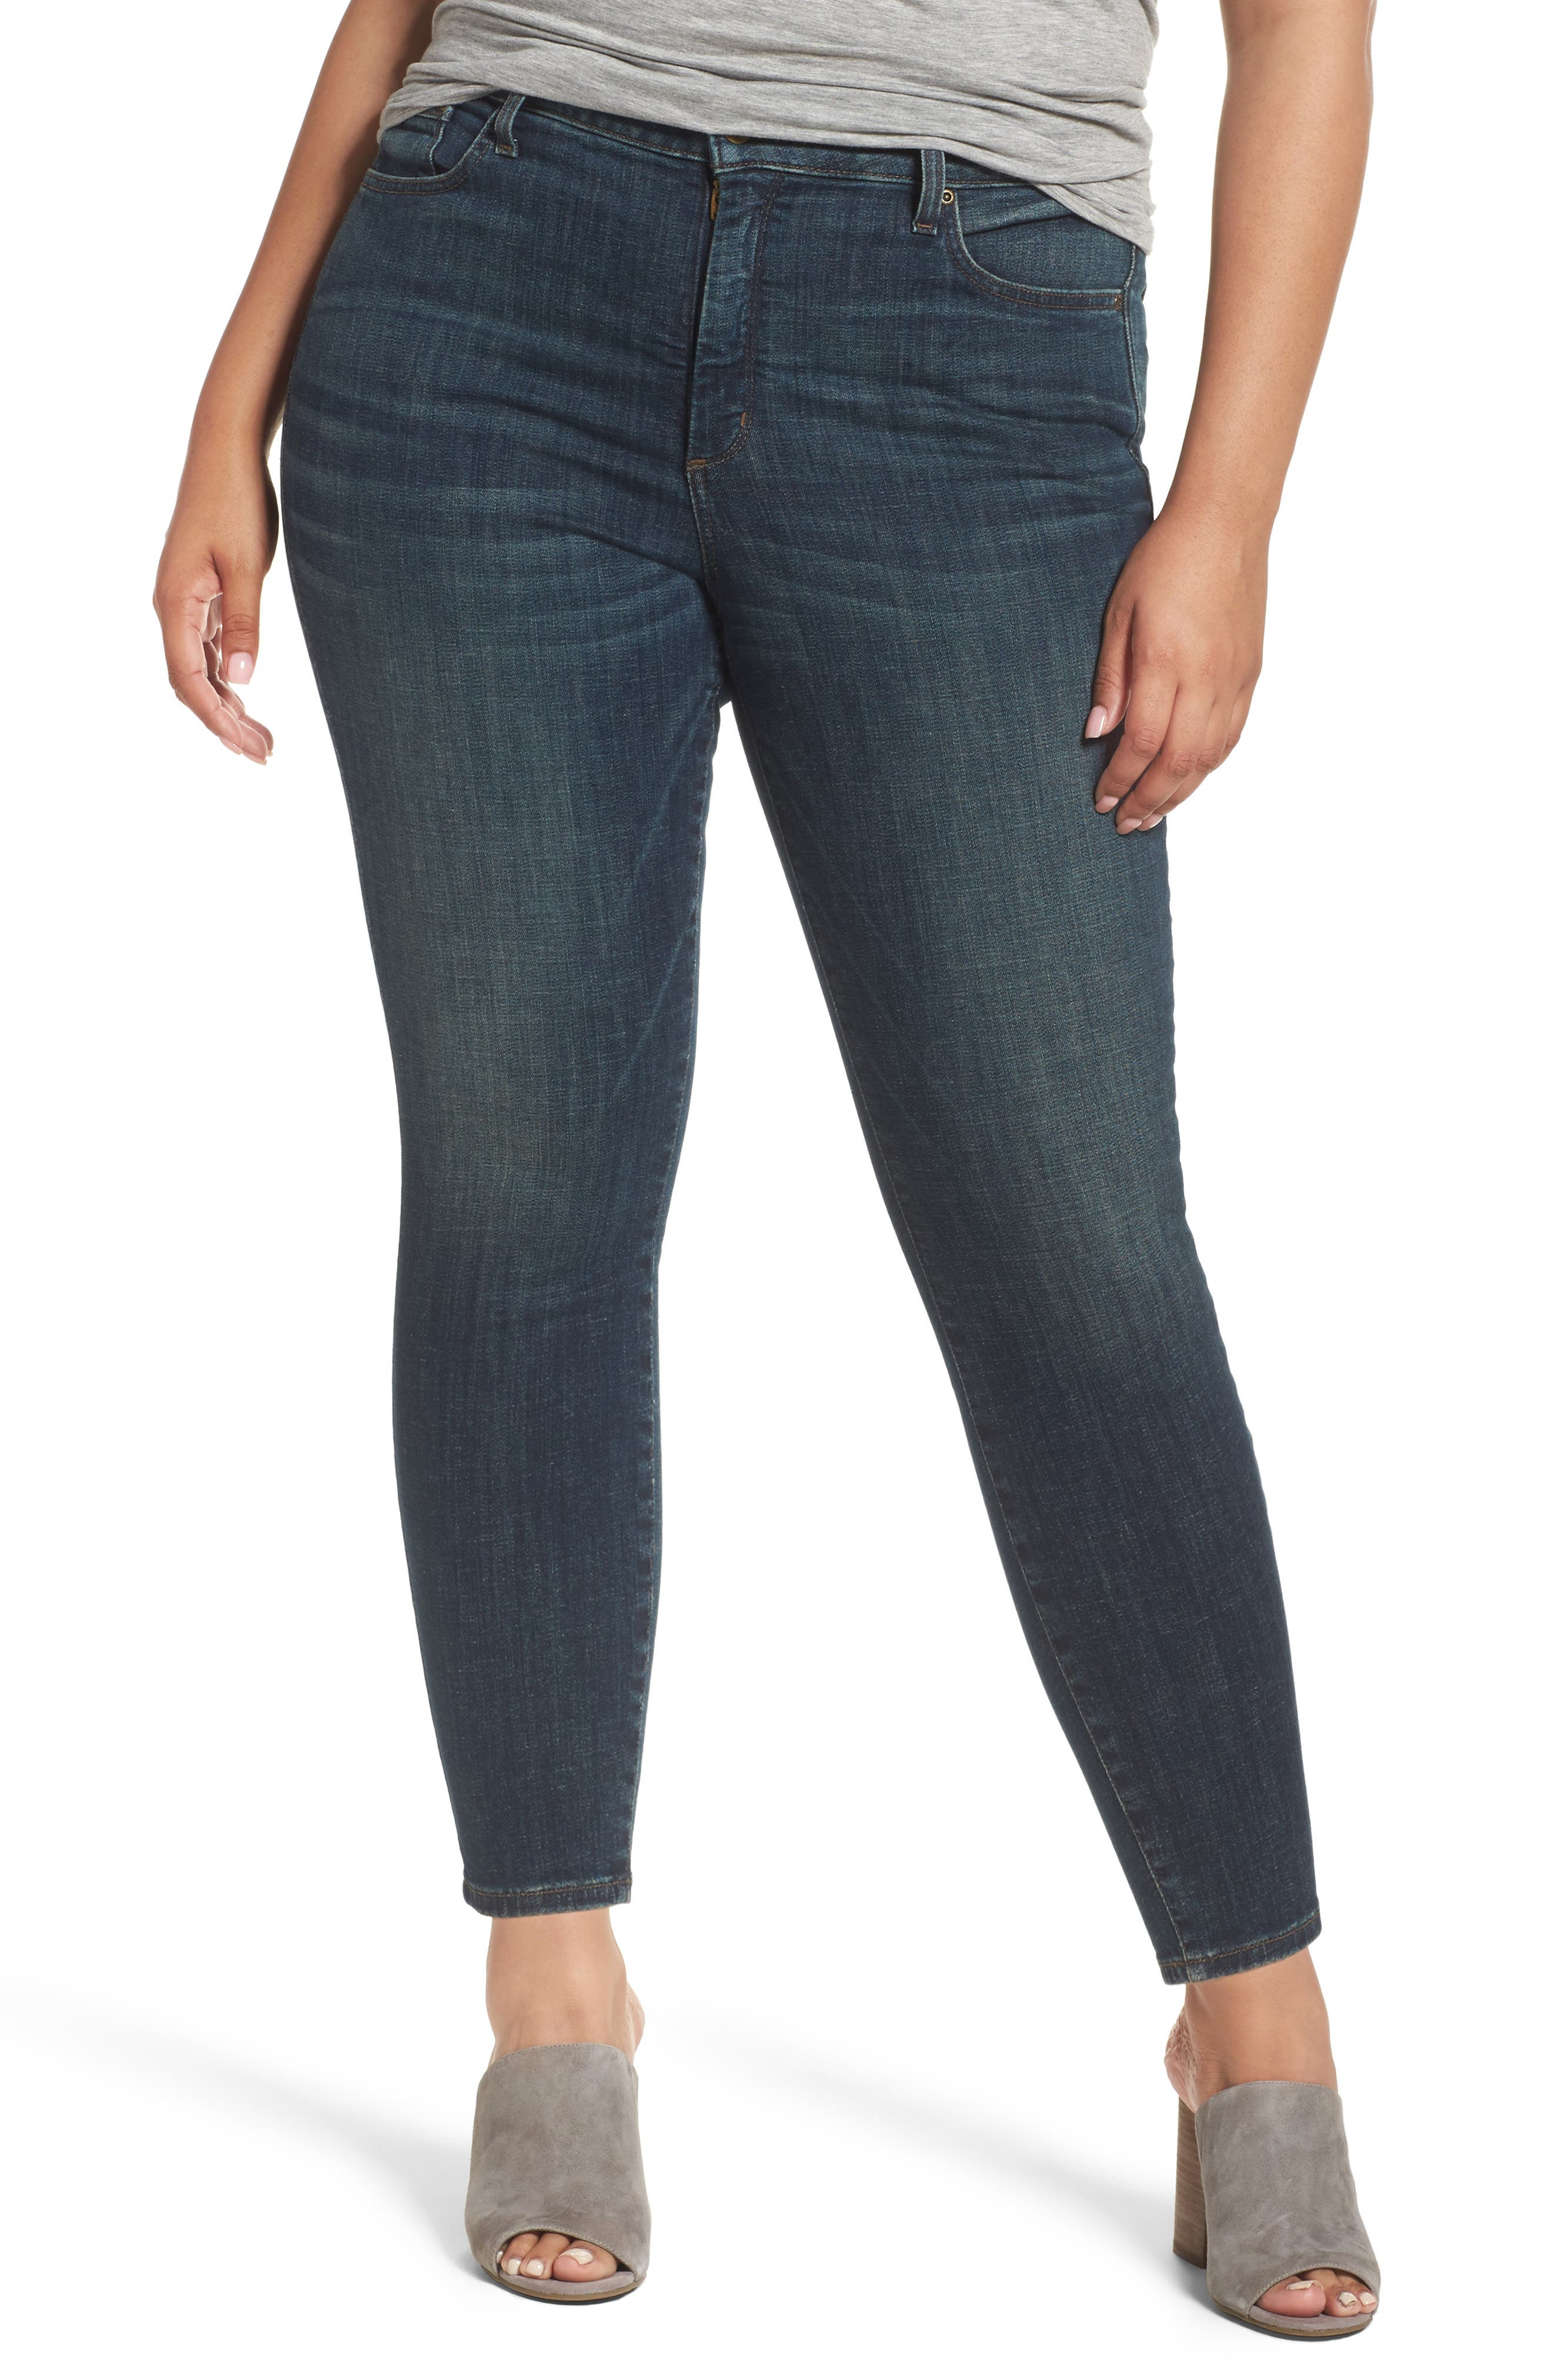 NYDJ Ami Stretch Skinny Jeans (Desert Gold) (Plus Size)